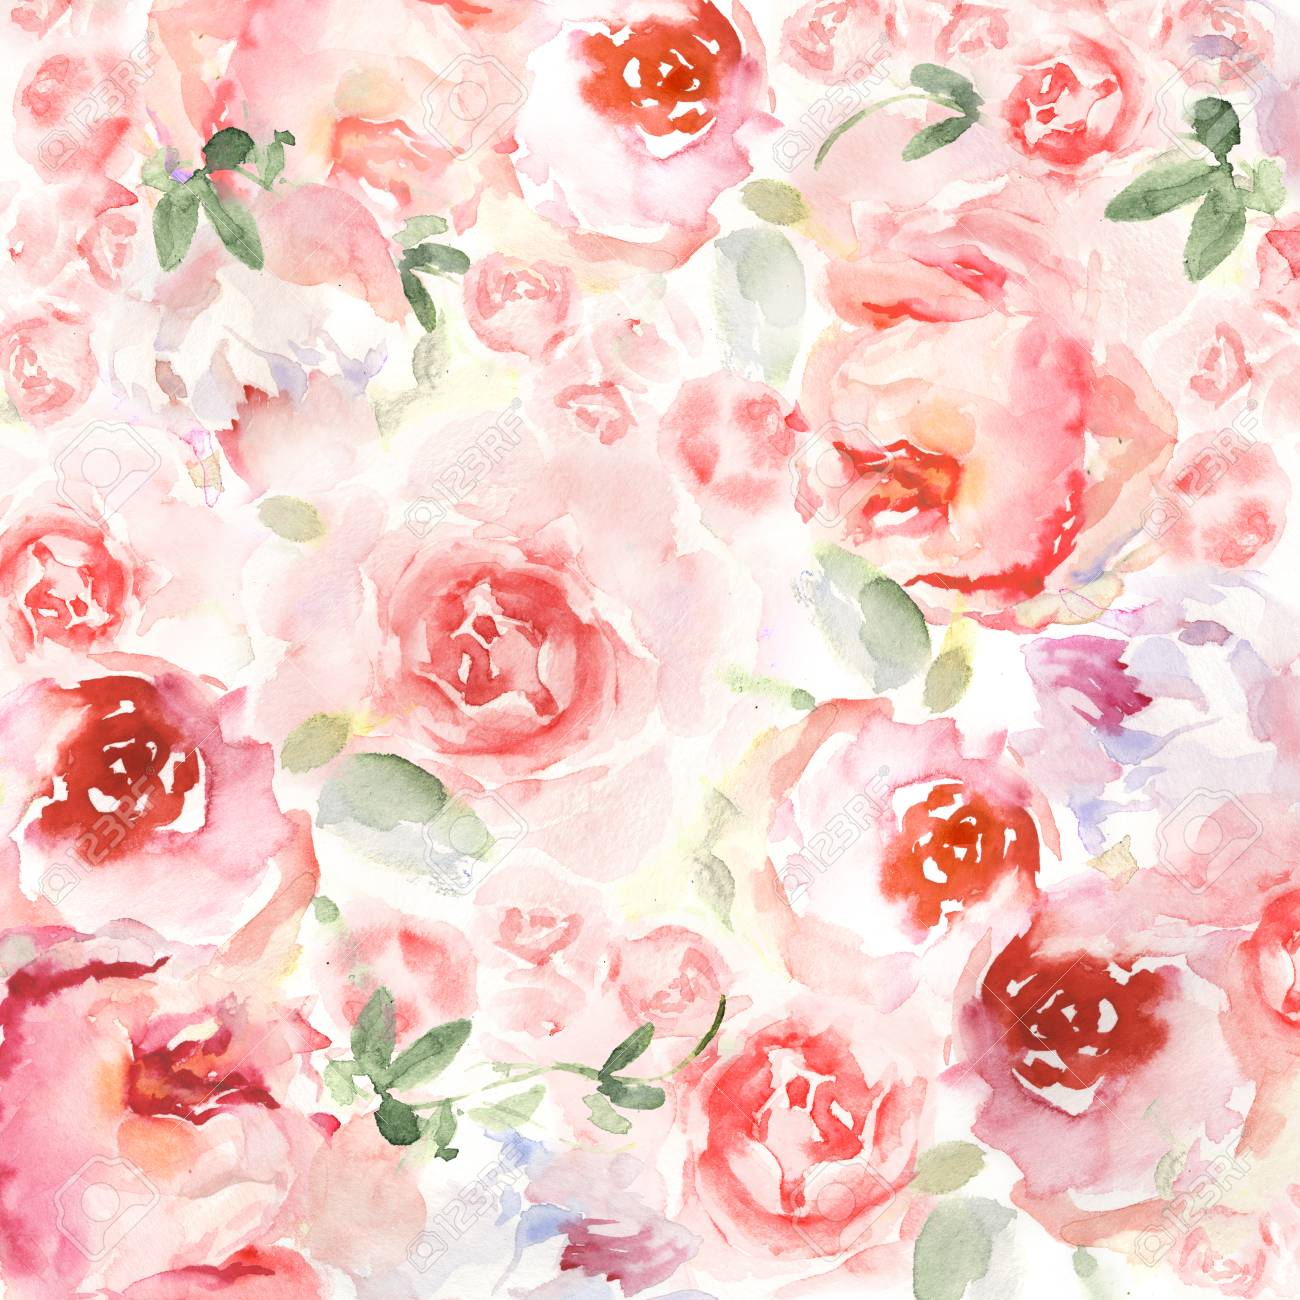 Watercolor Flower Background For Invitation Card Floral Hand